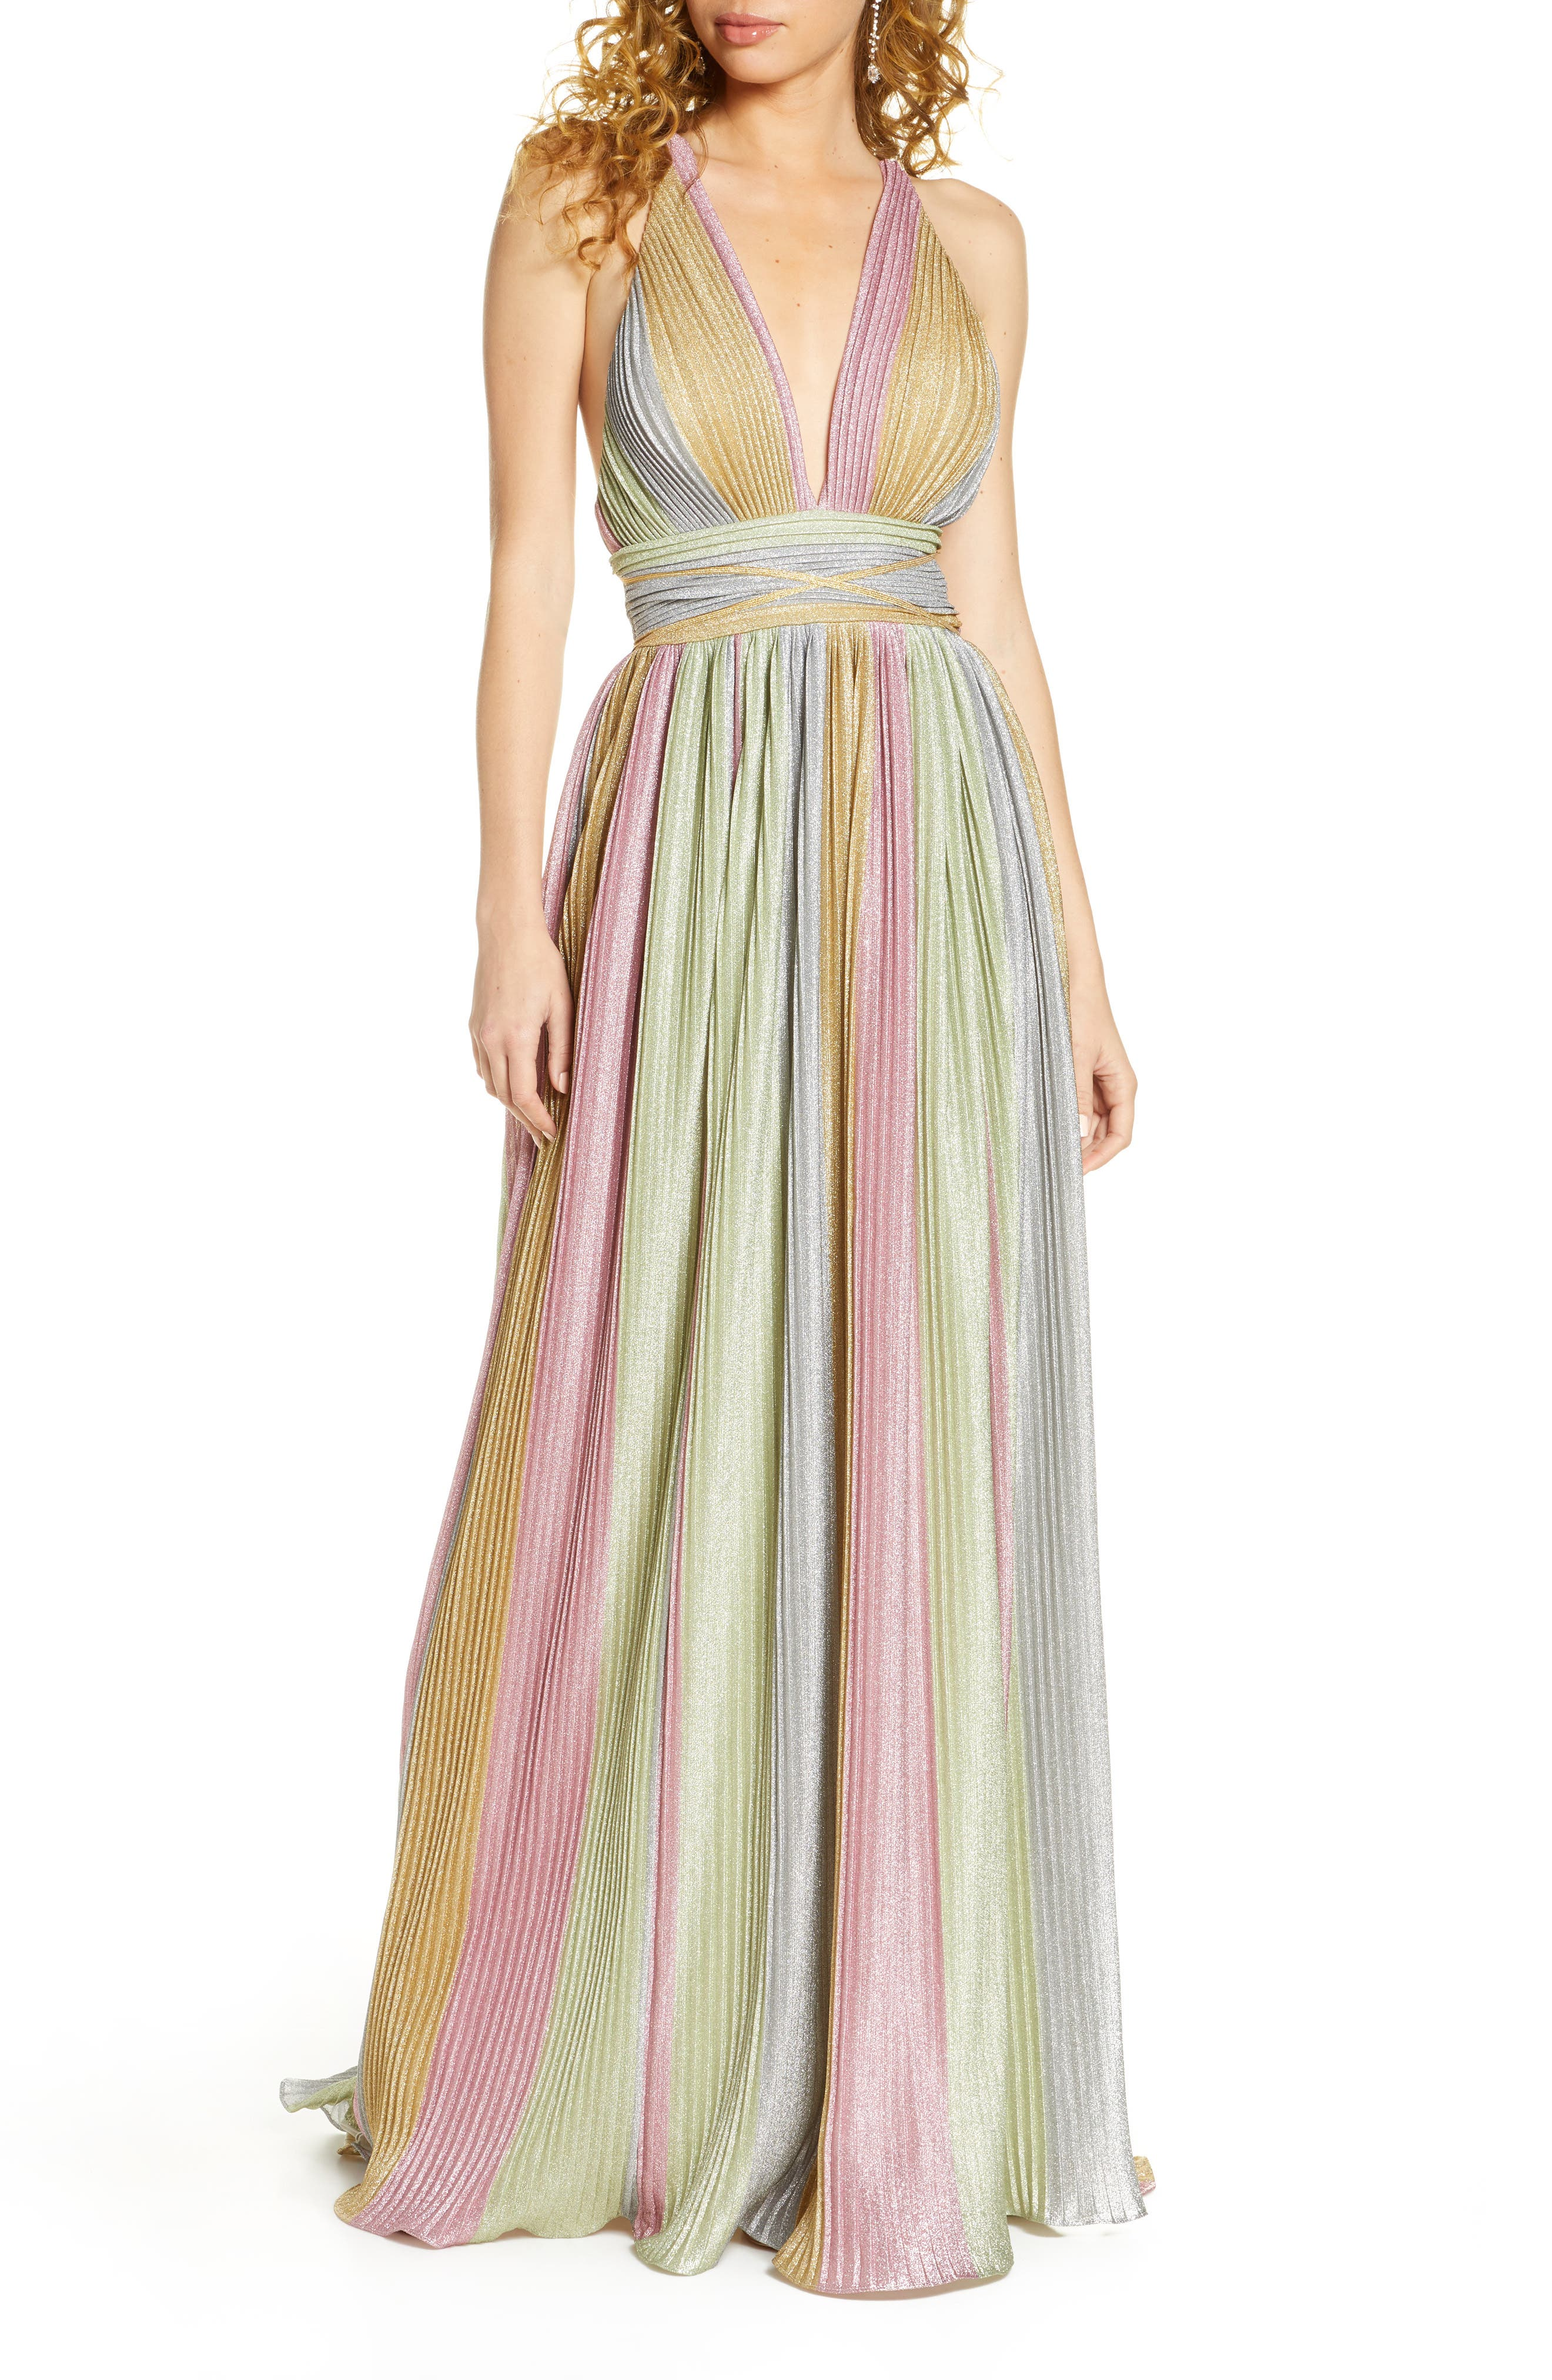 70s Prom, Formal, Evening, Party Dresses Womens MAC Duggal Rainbow Sparkle Pleated Gown Size 14 - Pink $238.80 AT vintagedancer.com